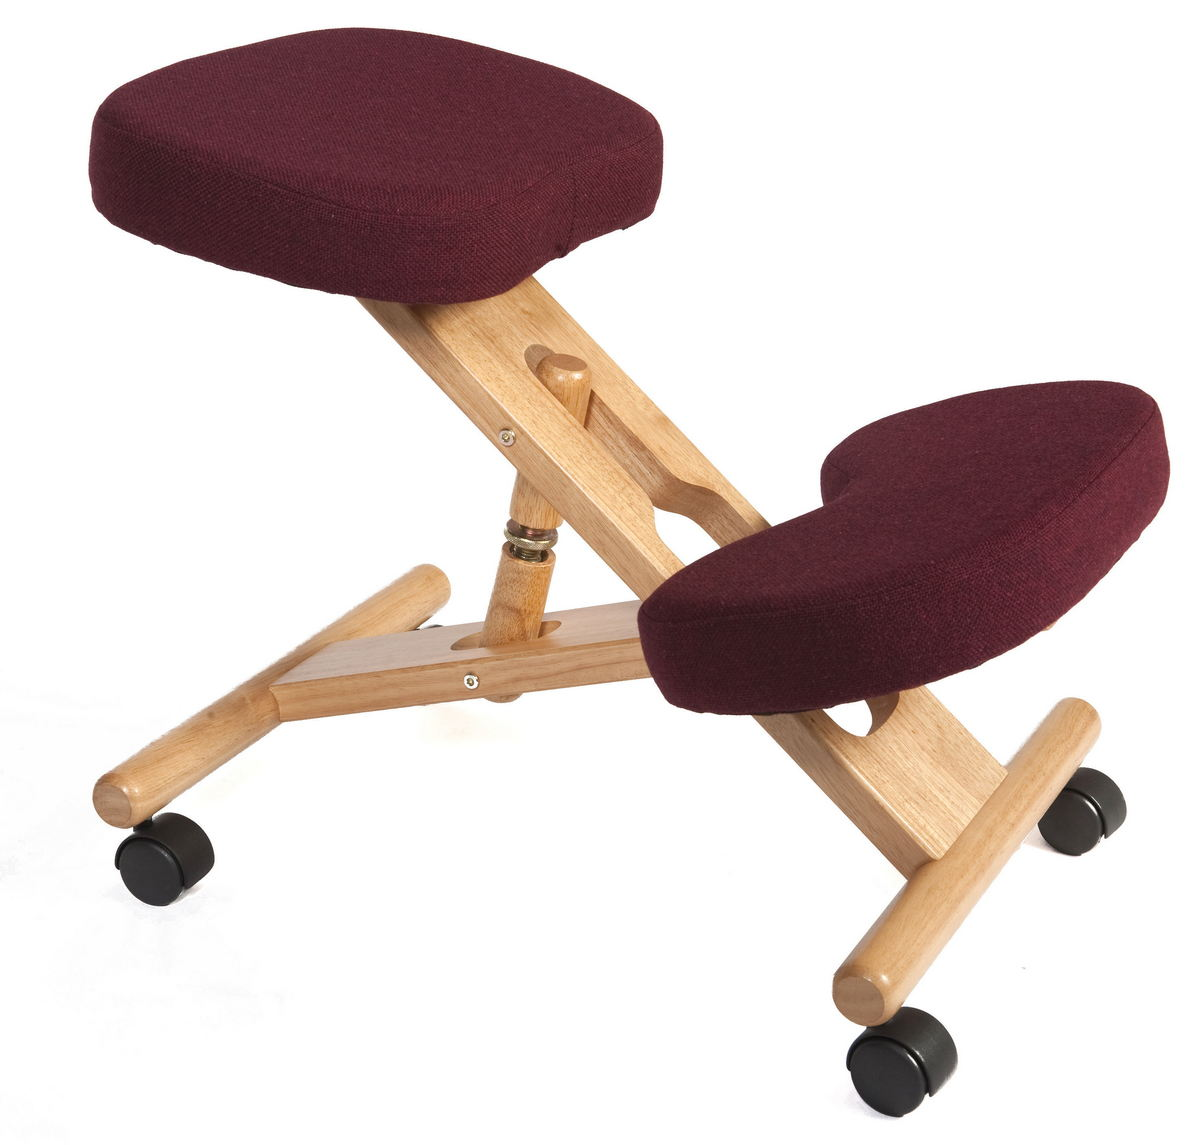 the posture chair how to make wooden chairs kneeling uk no 1 for sale online